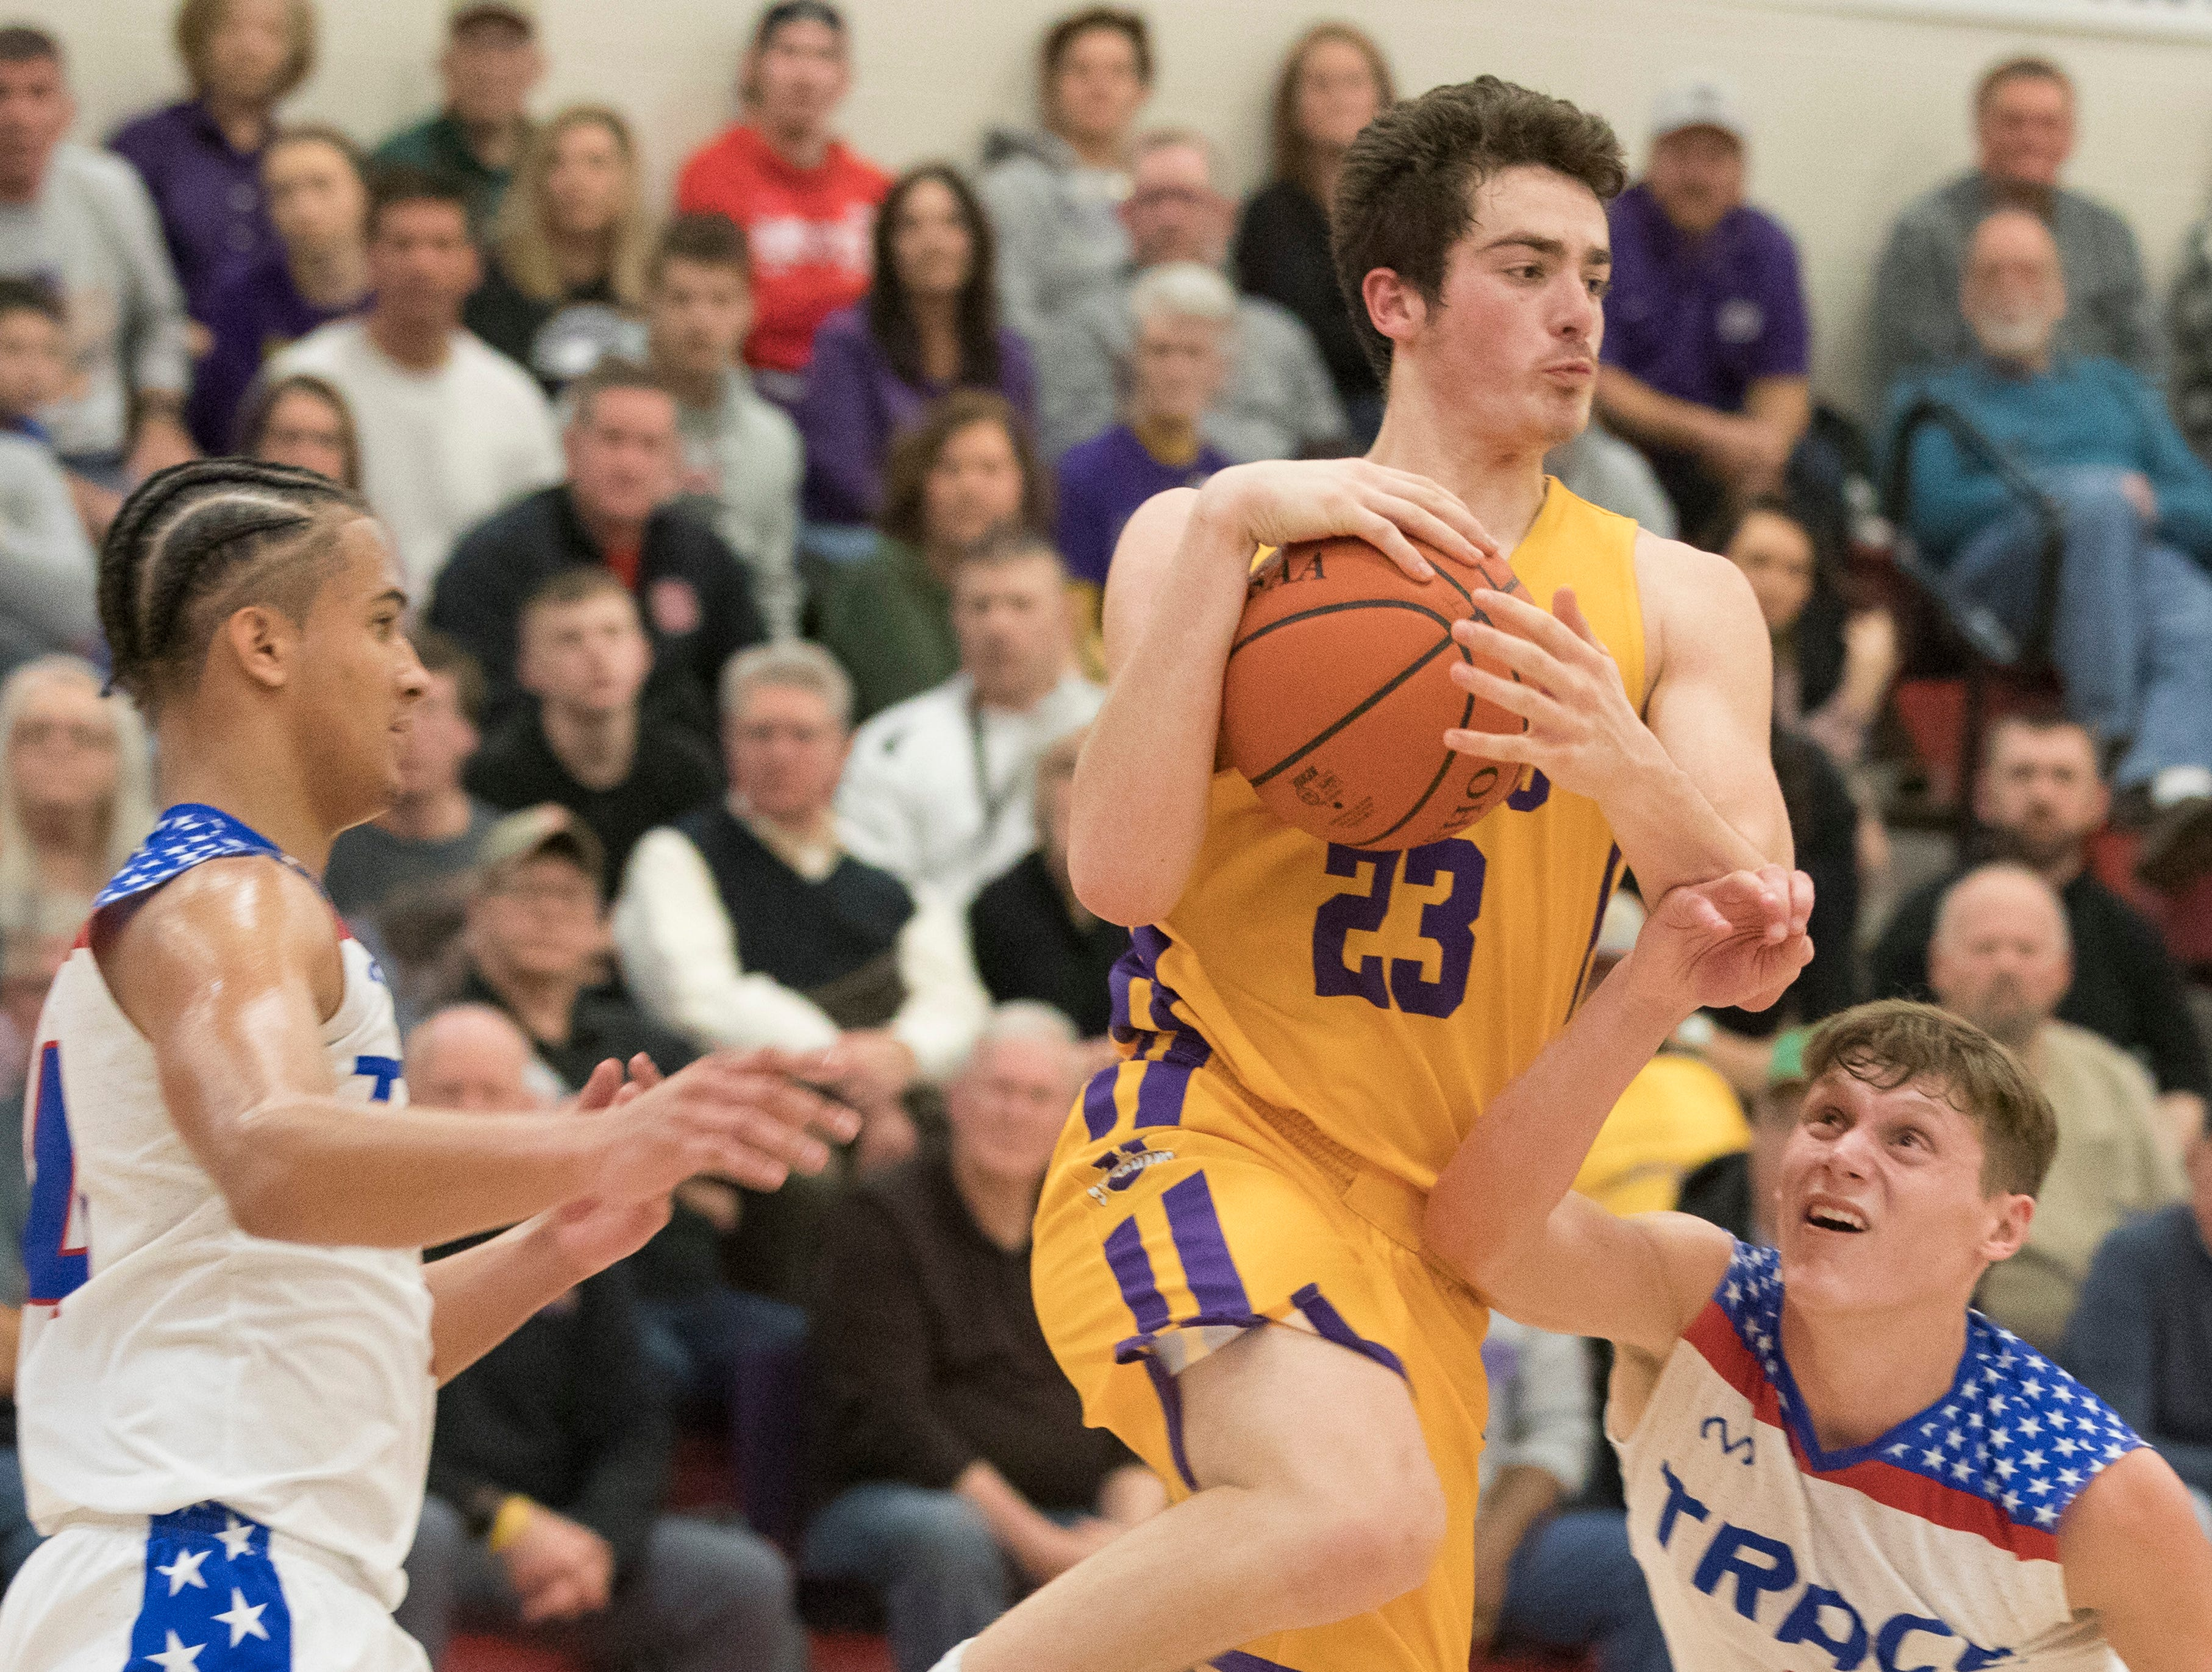 Unioto senior Gabe McBee looks for an opening to pass the ball as he jumps over Zane Trace's defense Friday night at Zane Trace High School.